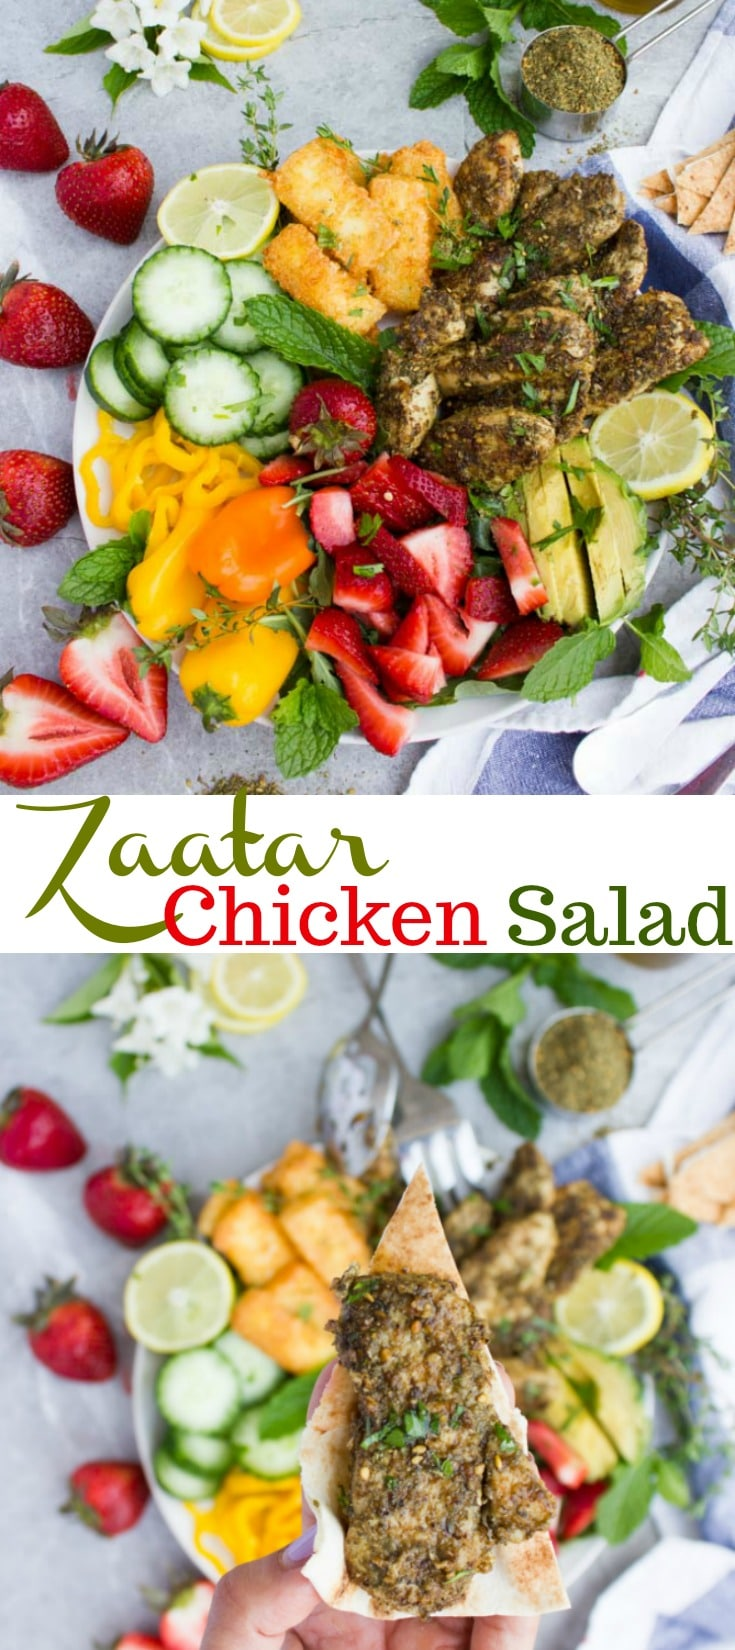 This healthy Mediterranean Za'atar Chicken Salad with Fried Halloumi is a must-try - bold in flavor with a bright and zesty touch, and ready in 30 minutes. No need for fancy dressings. A squeeze of lemon juice and olive oil is all you need #friedhalloumi, #zaatarchicken